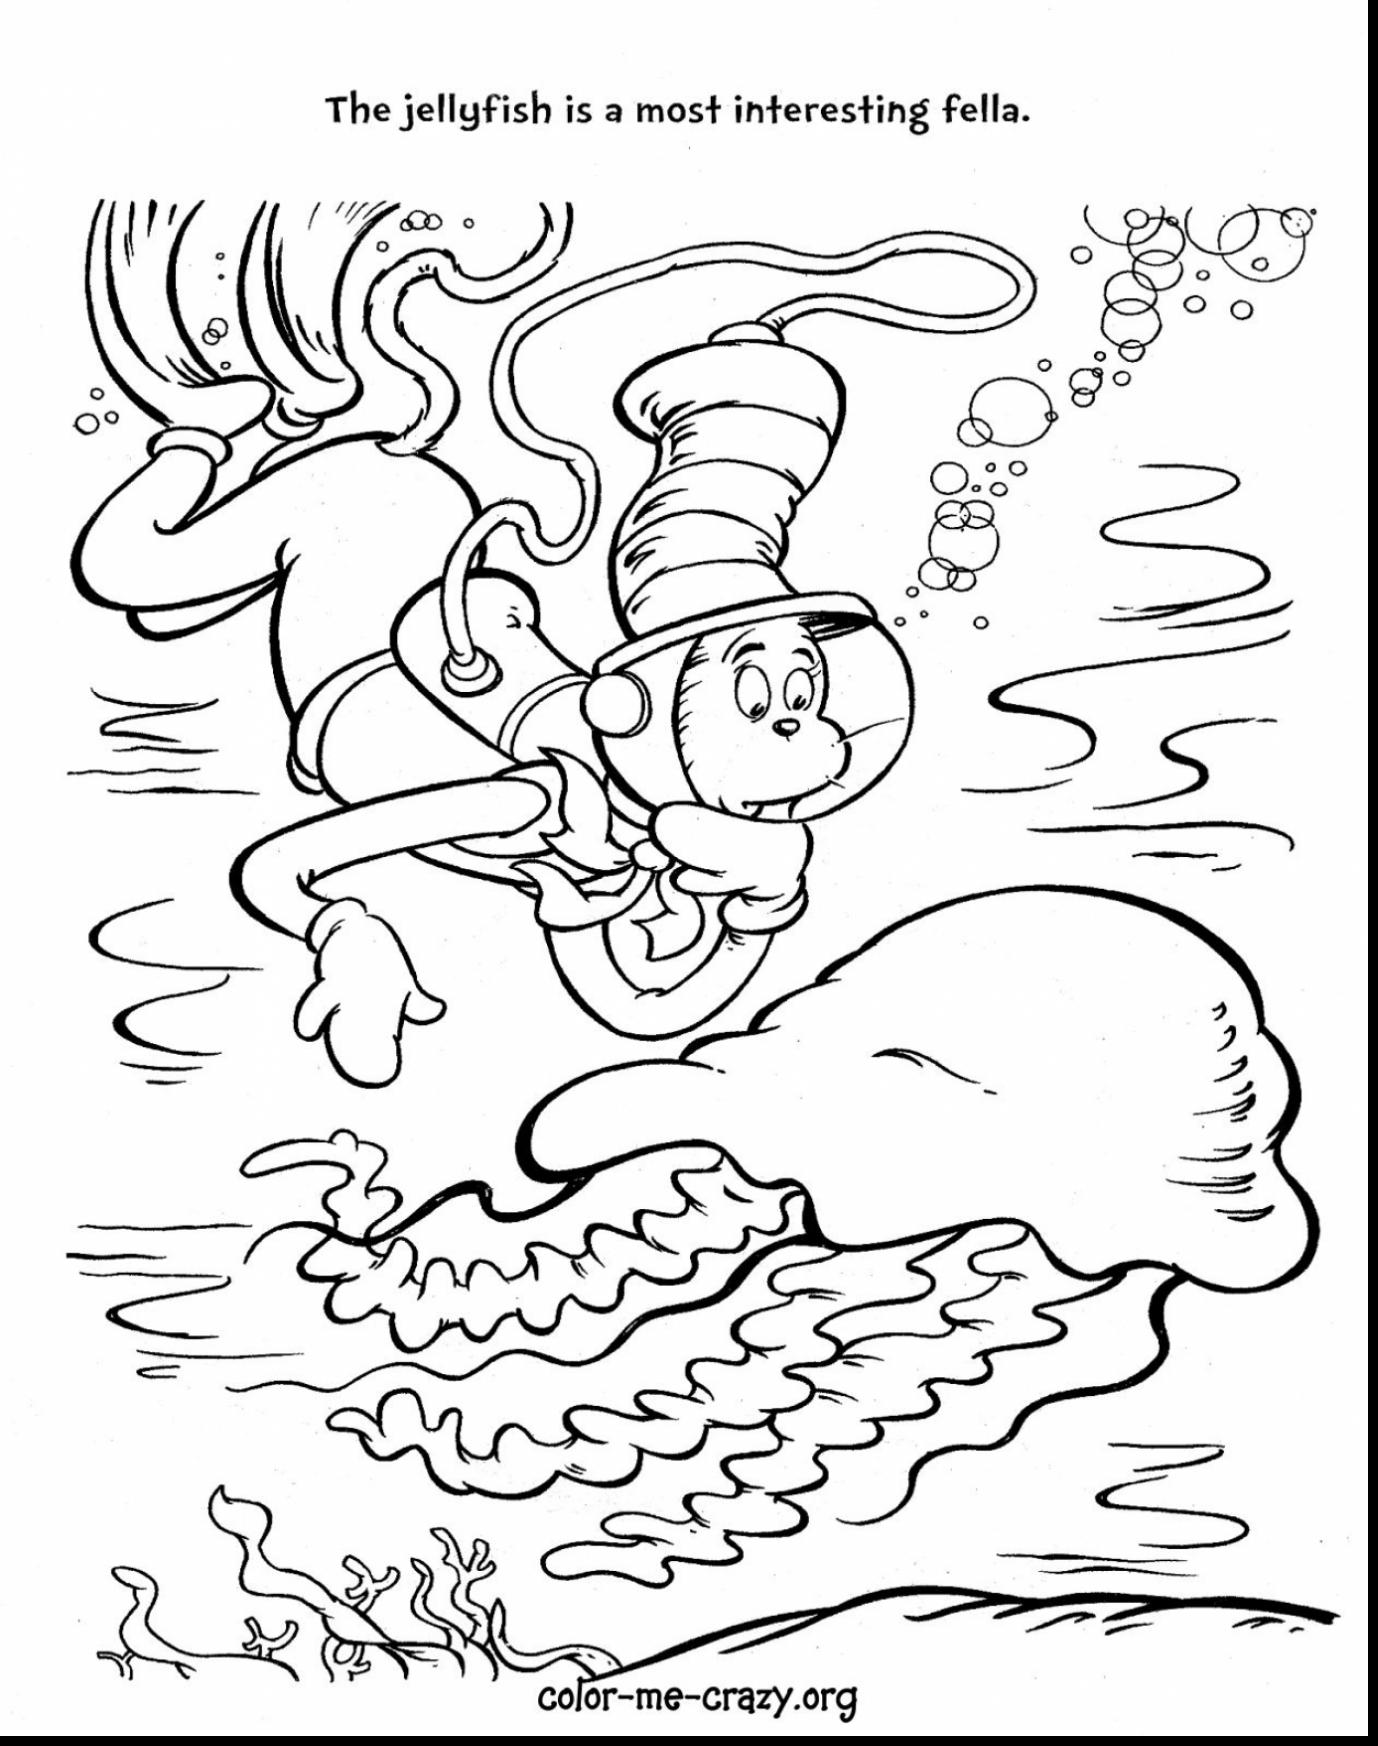 Dr Seuss Coloring Page Printable At Getdrawings